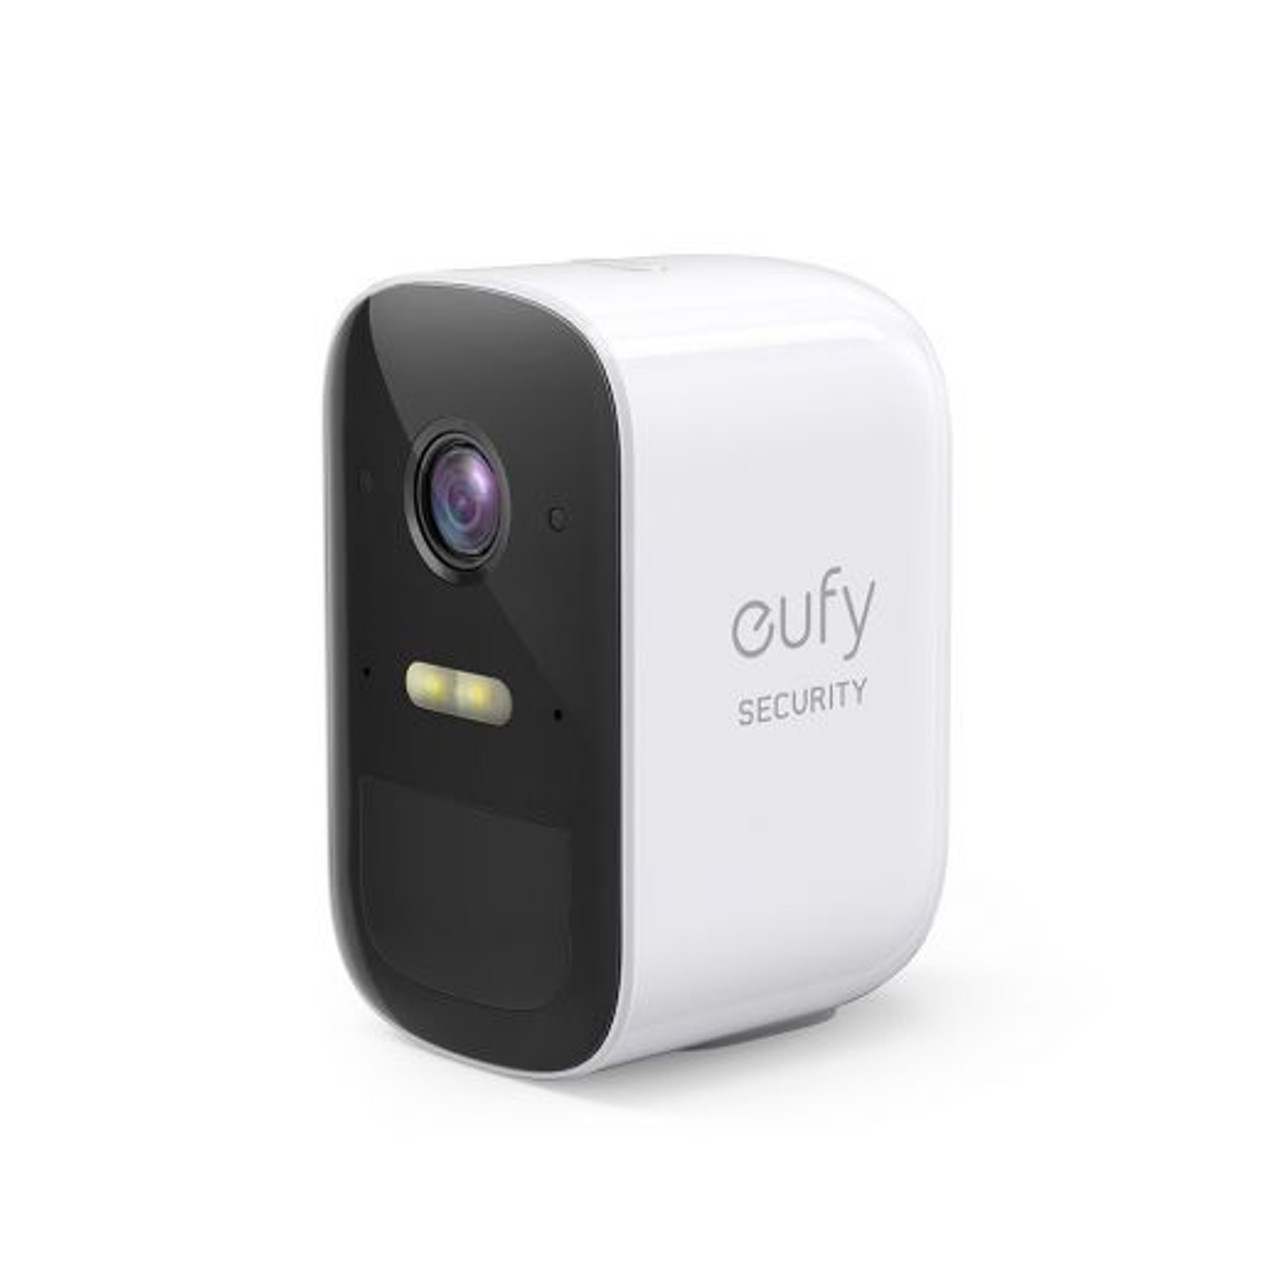 Eufy T8863CD1 Cam 2C Wire Free Full-HD Security 4-Camera Set with Homebase